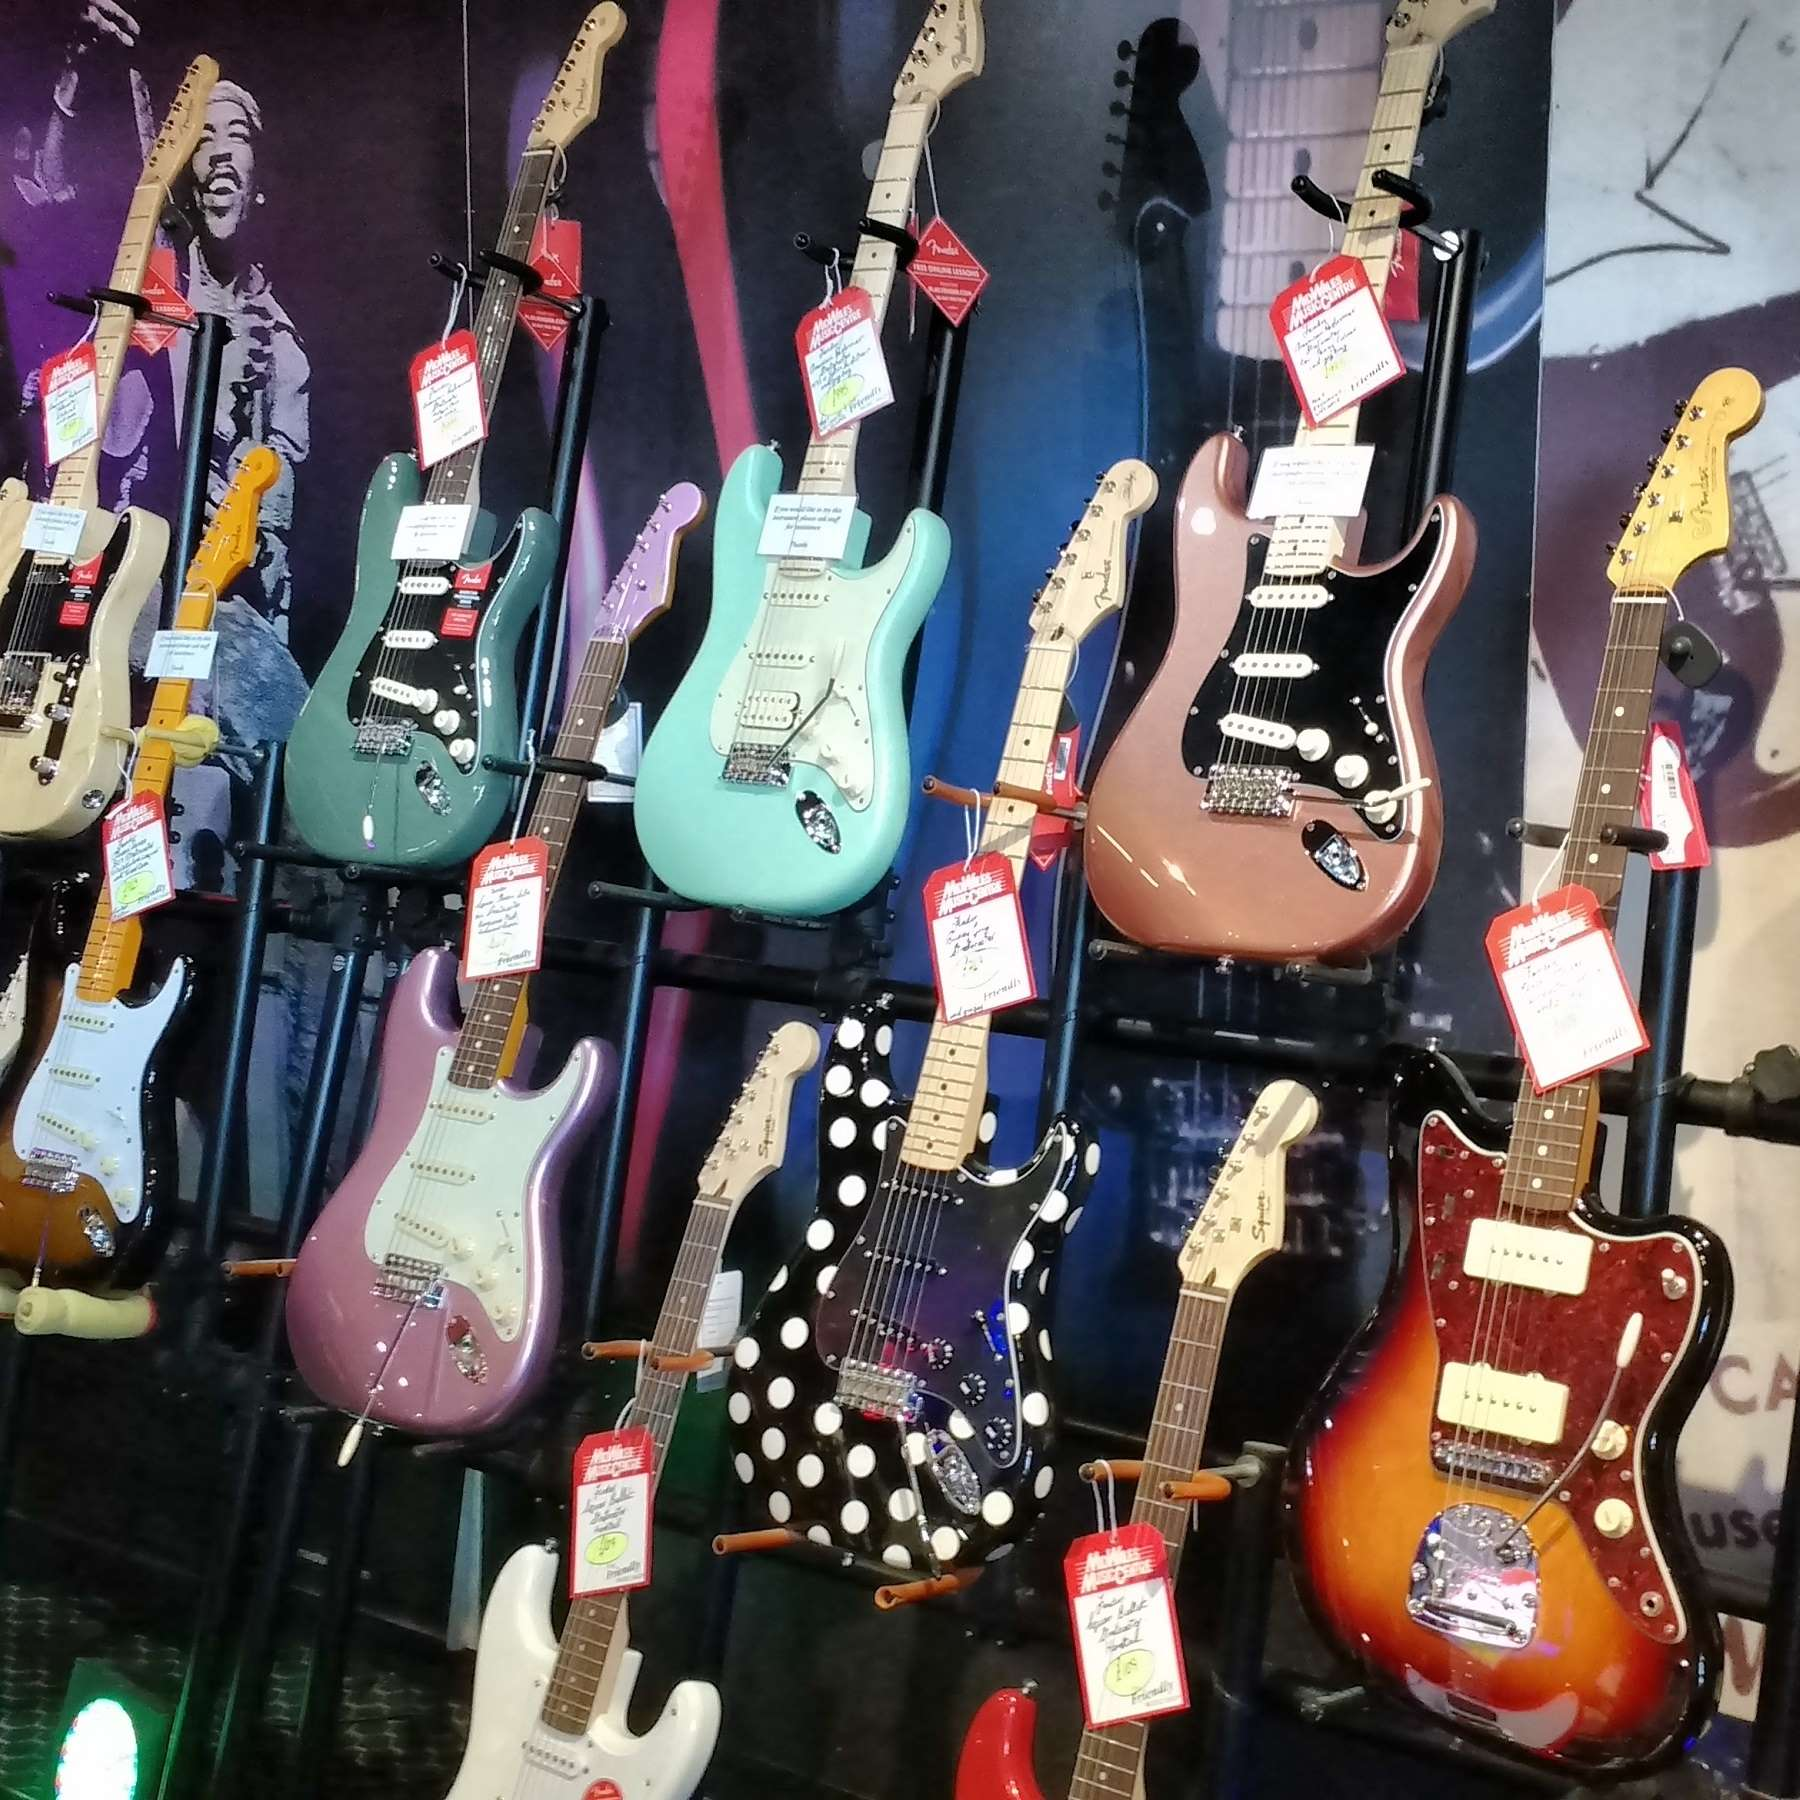 Fender guitar display